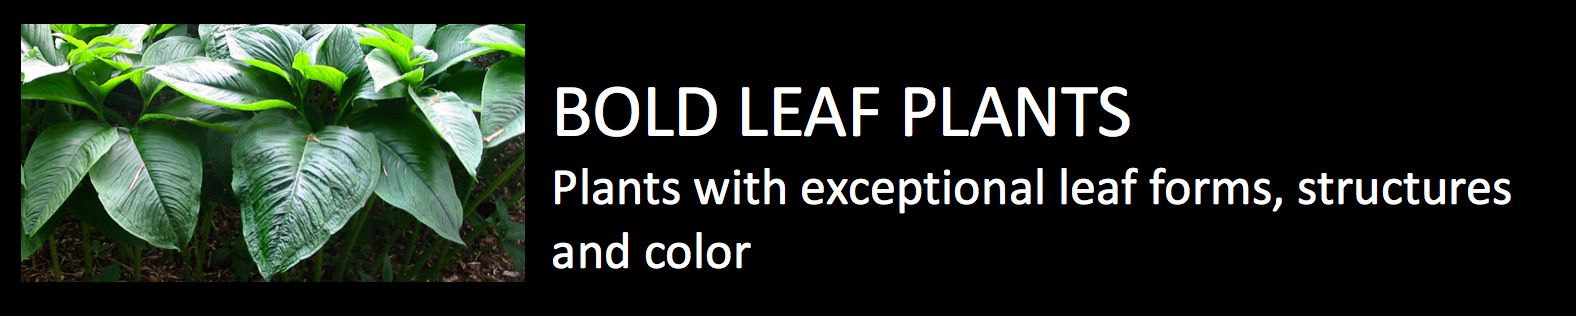 Exotics Bold leaf plants plants with exceptional leaf forms structures and color